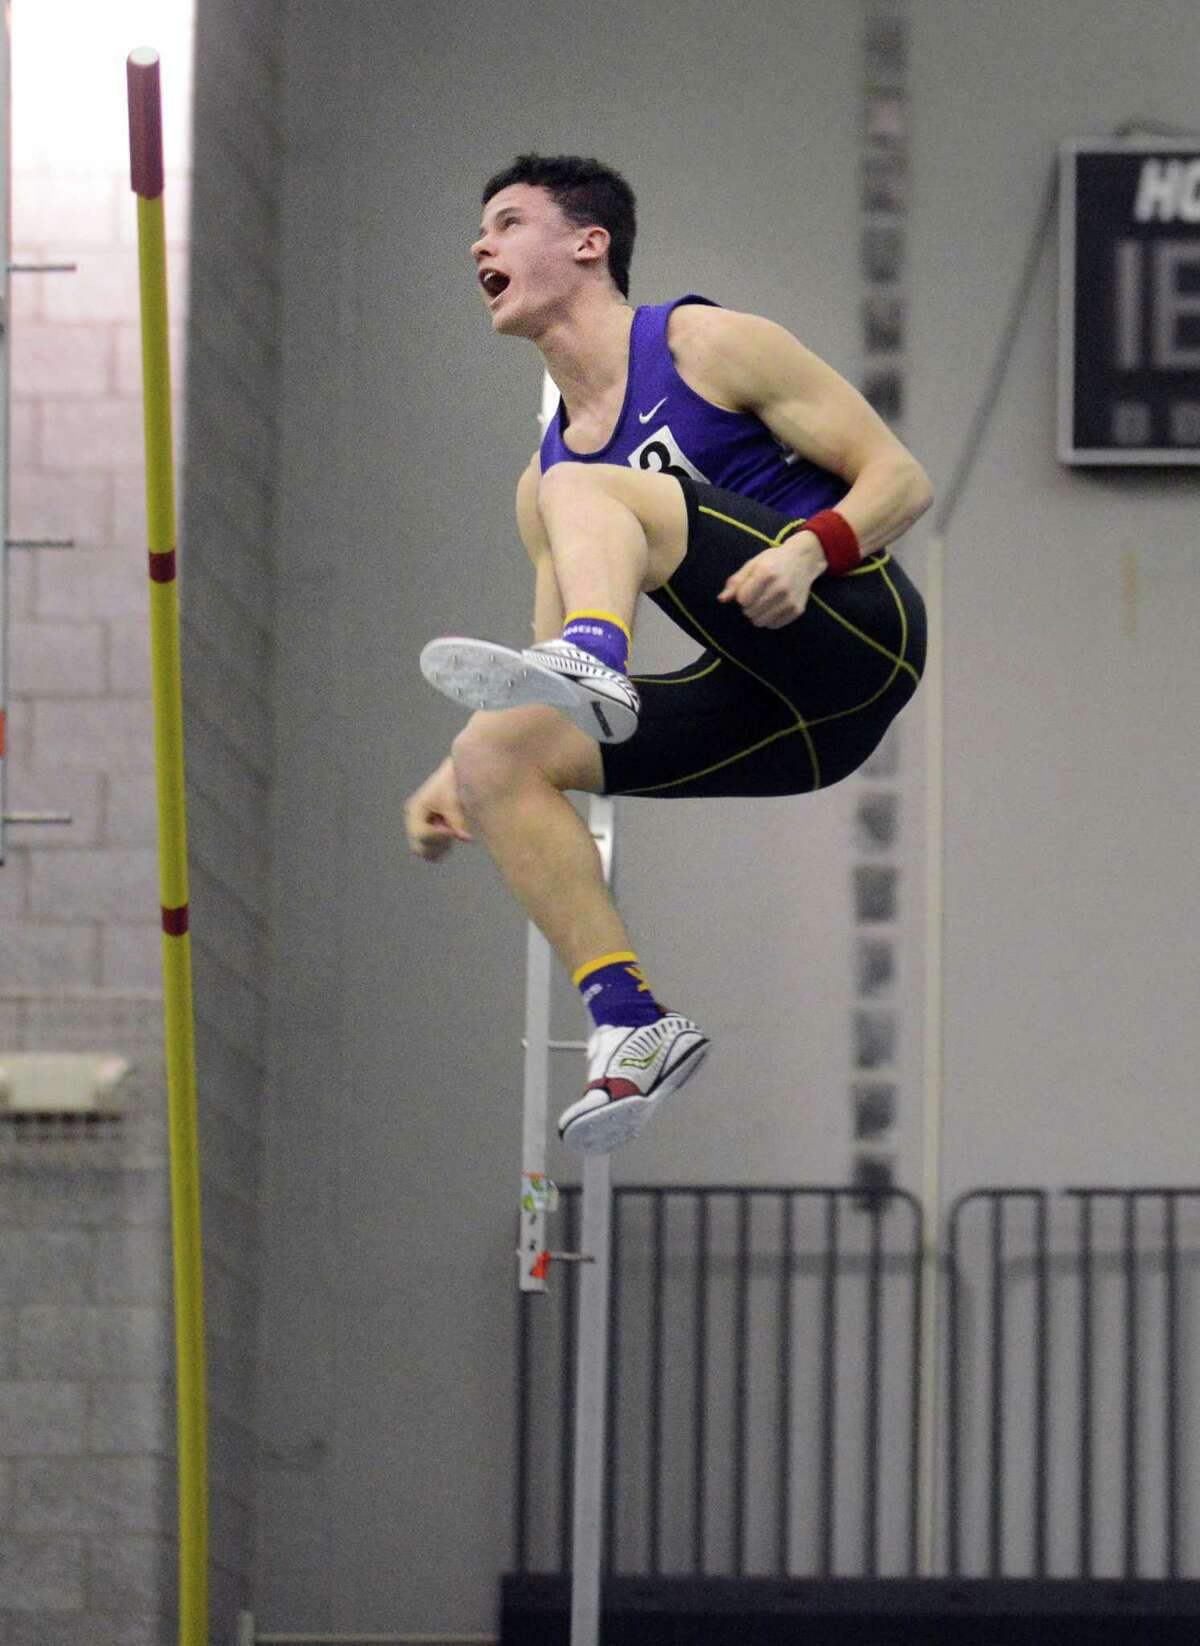 Westhill's Chris Rough competes in the pole vault event during the FCIAC Indoor Track Championships Wednesday, Jan. 29, 2014, at the Floyd Little Athletic Center in New Haven, Conn. Rough was the FCIAC boys pole vault champion at 14 feet.